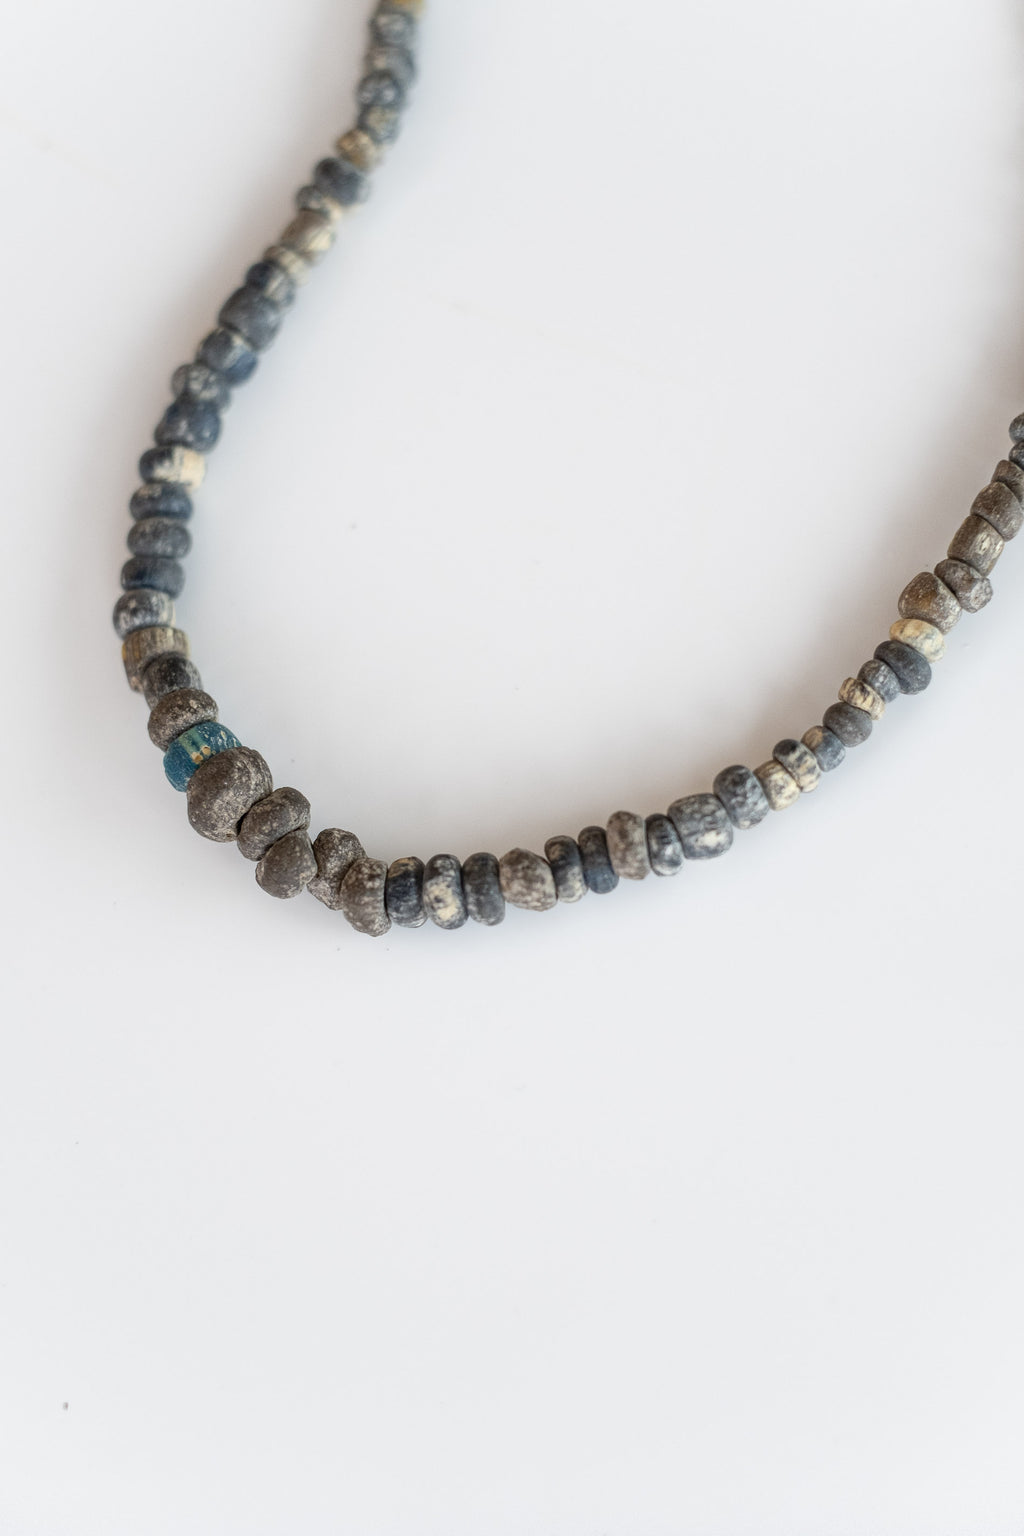 ANTIQUE AFRICAN BEADS IN BLUES